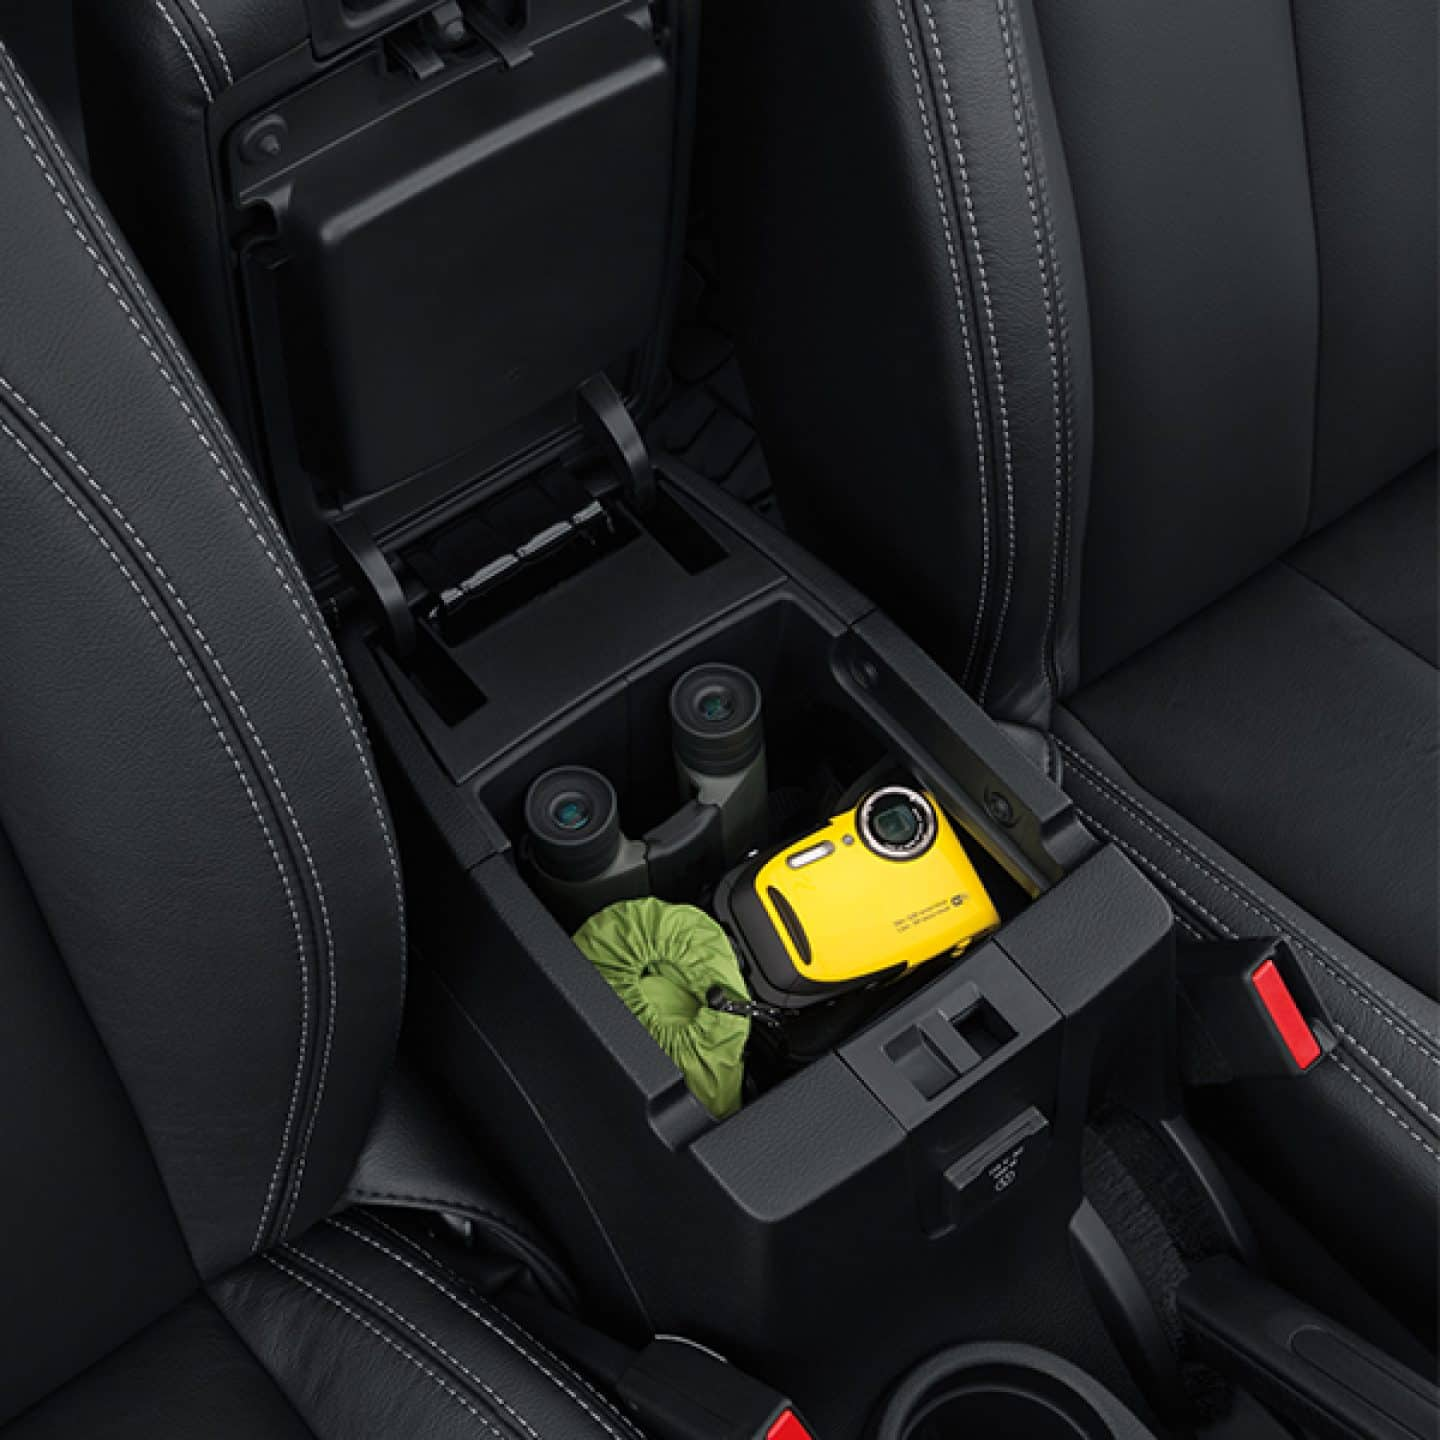 2018 Jeep Wrangler JK Lockable Centre Console Awesome Design